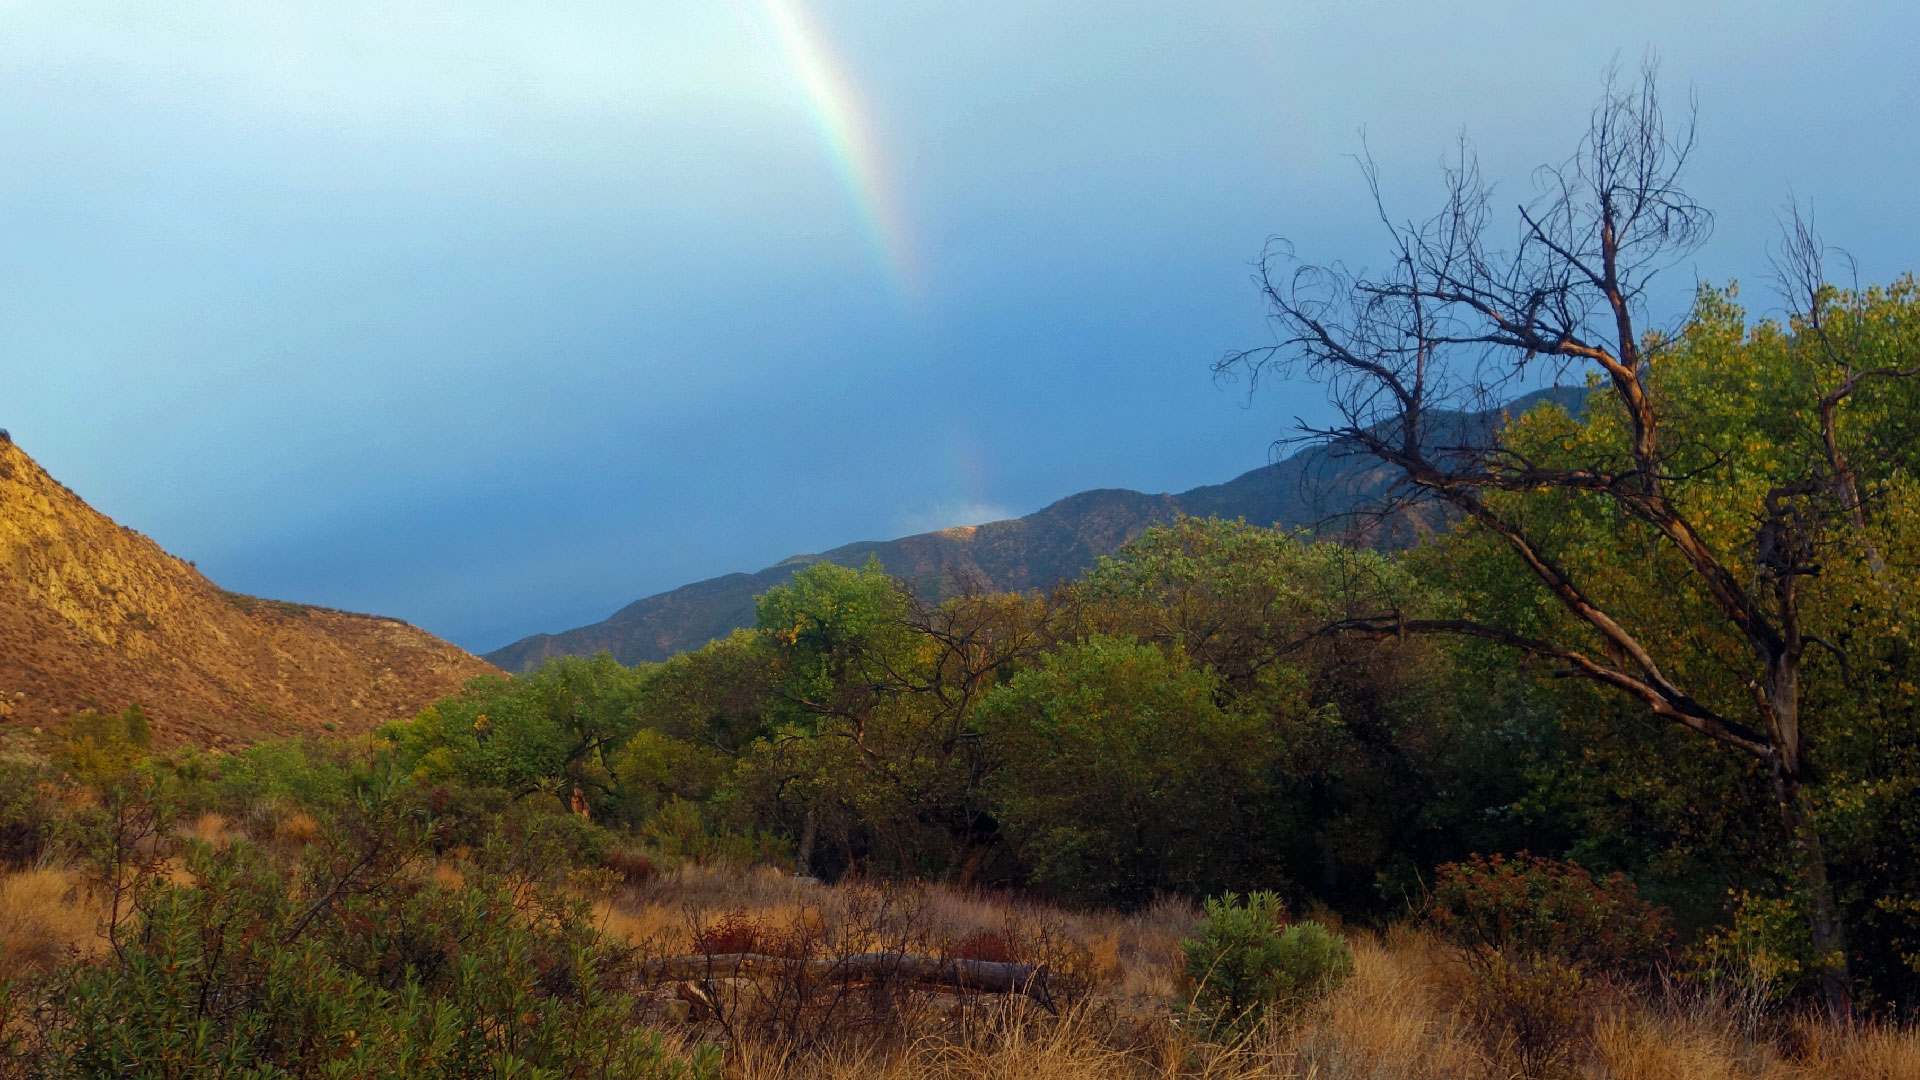 At the end of the rainbow - Willet Hot Springs Tub - Our Campsite - Hiking and Camping in Los Padres National Forest